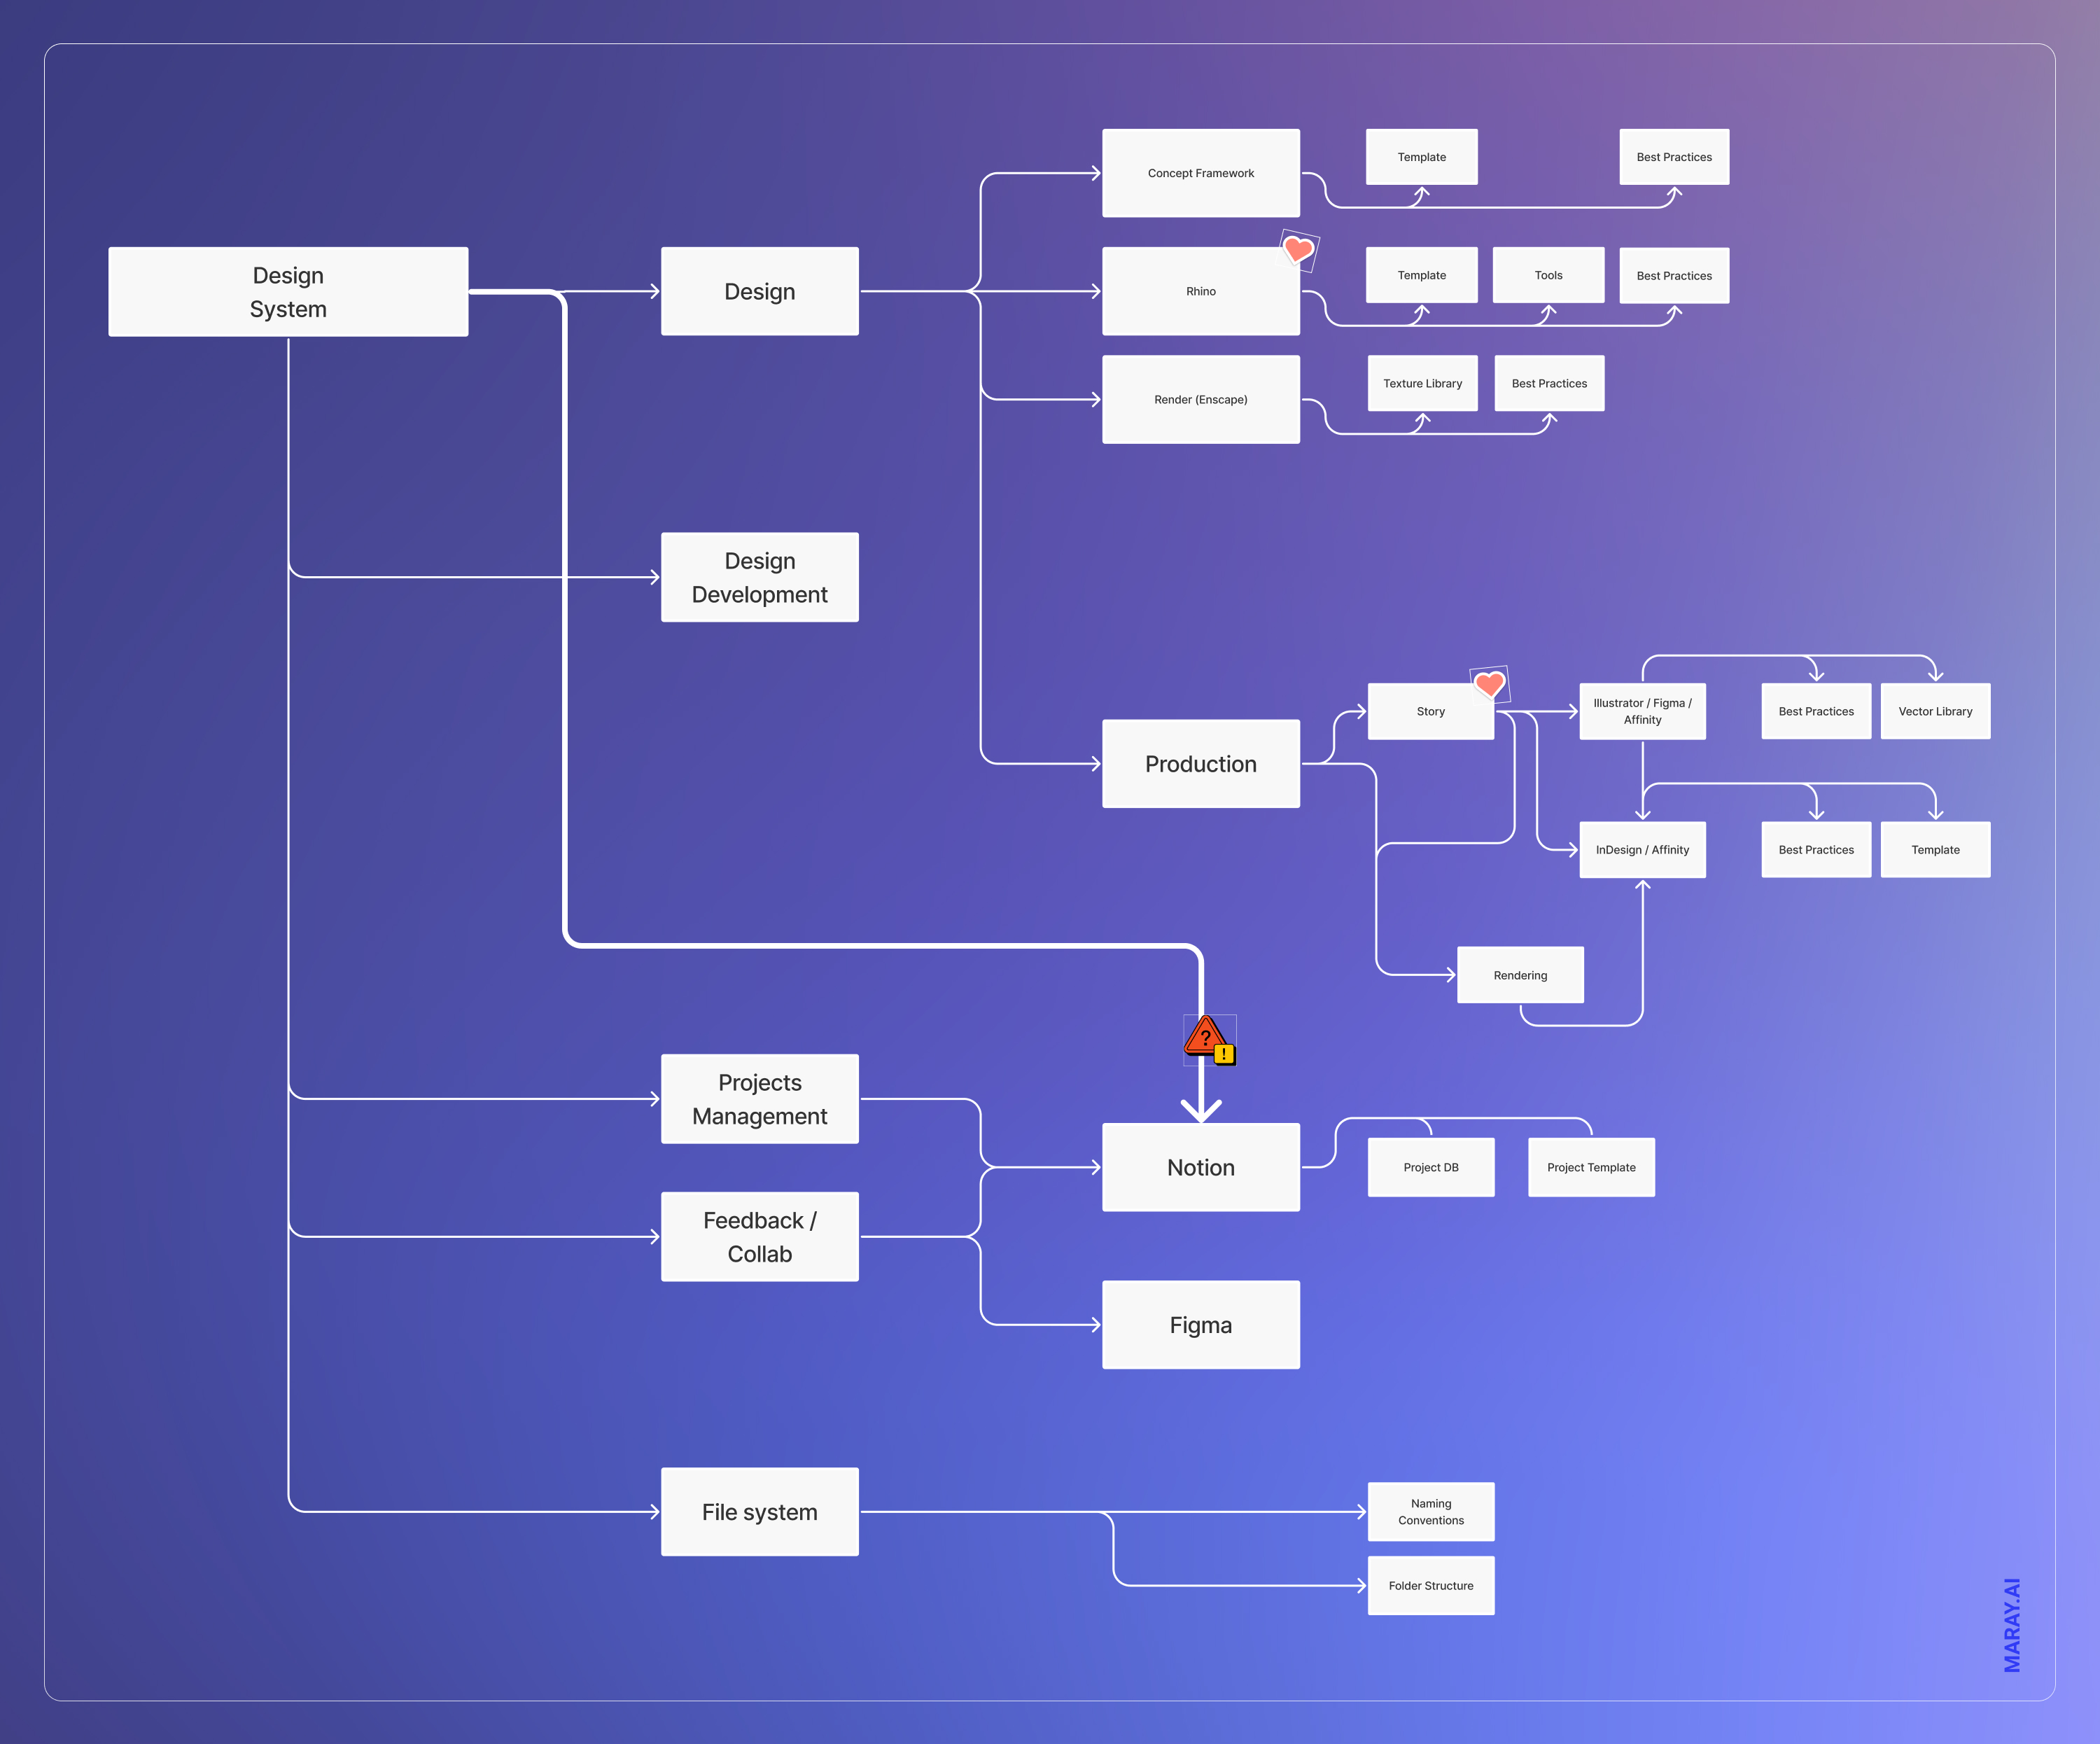 Design system overview that I prototypes with Figma. Will definitely change and evolve later.